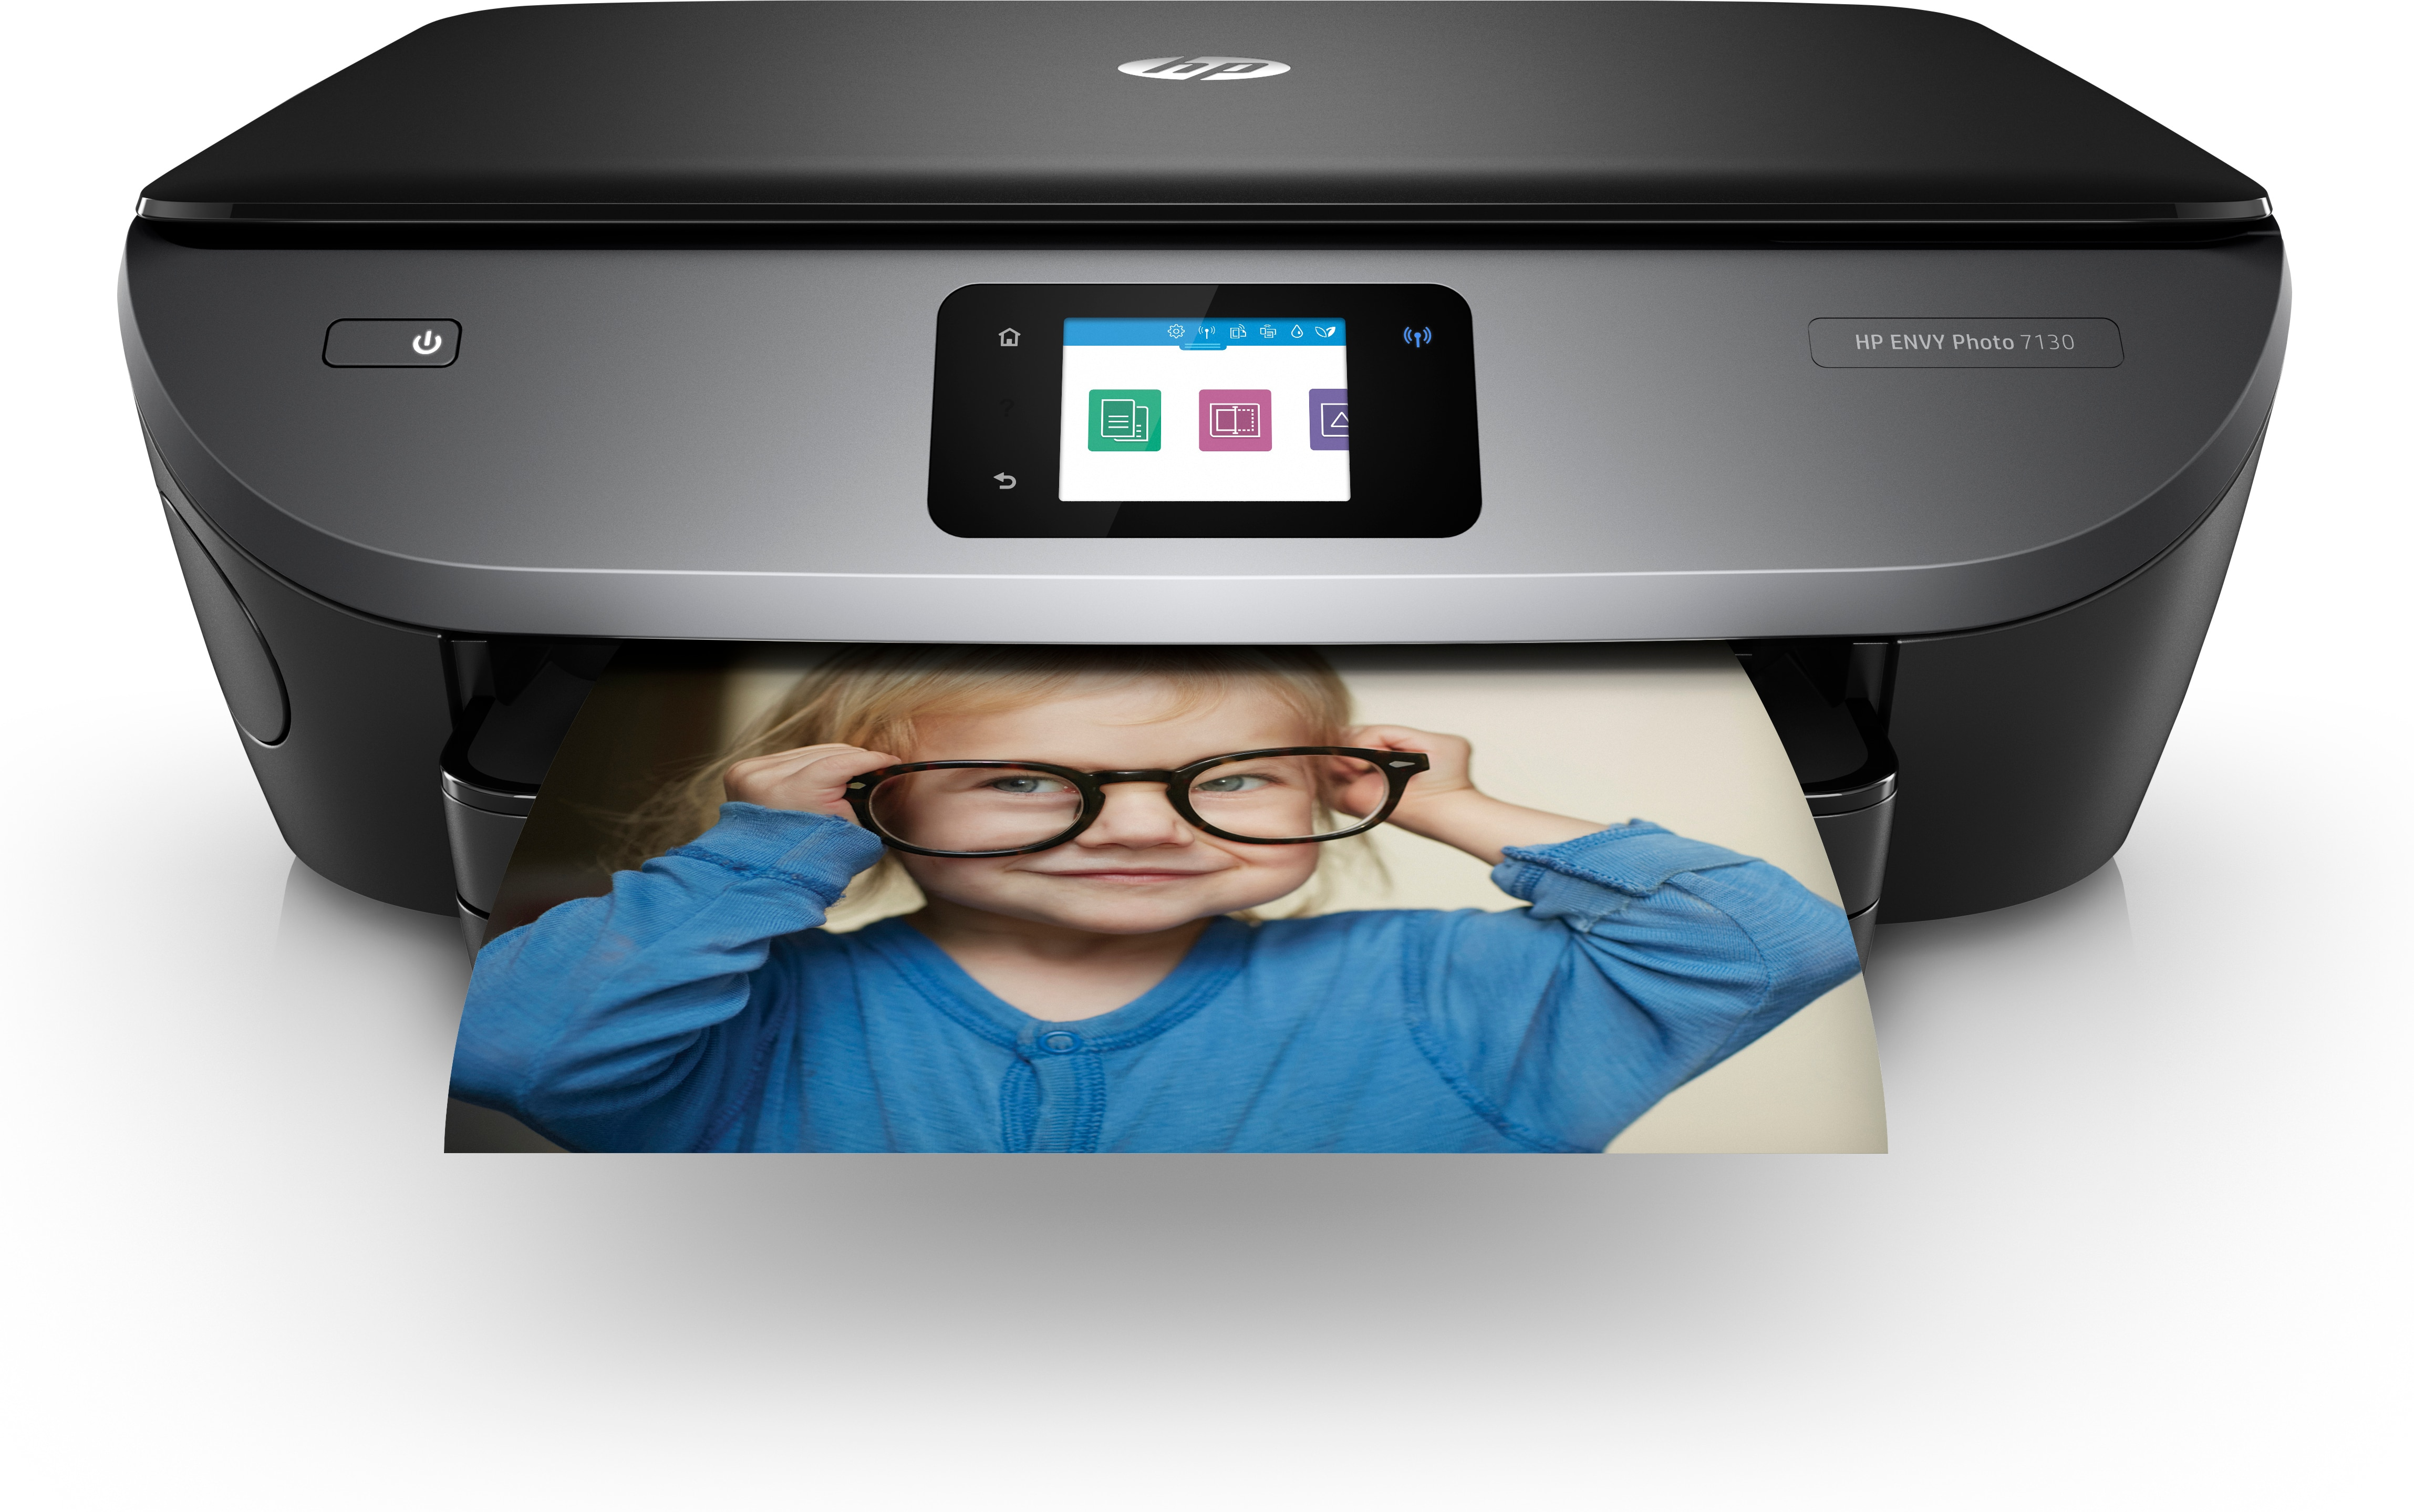 Hewlett Packard (HP) HP Envy Photo 7130 All-in-One - Multifun